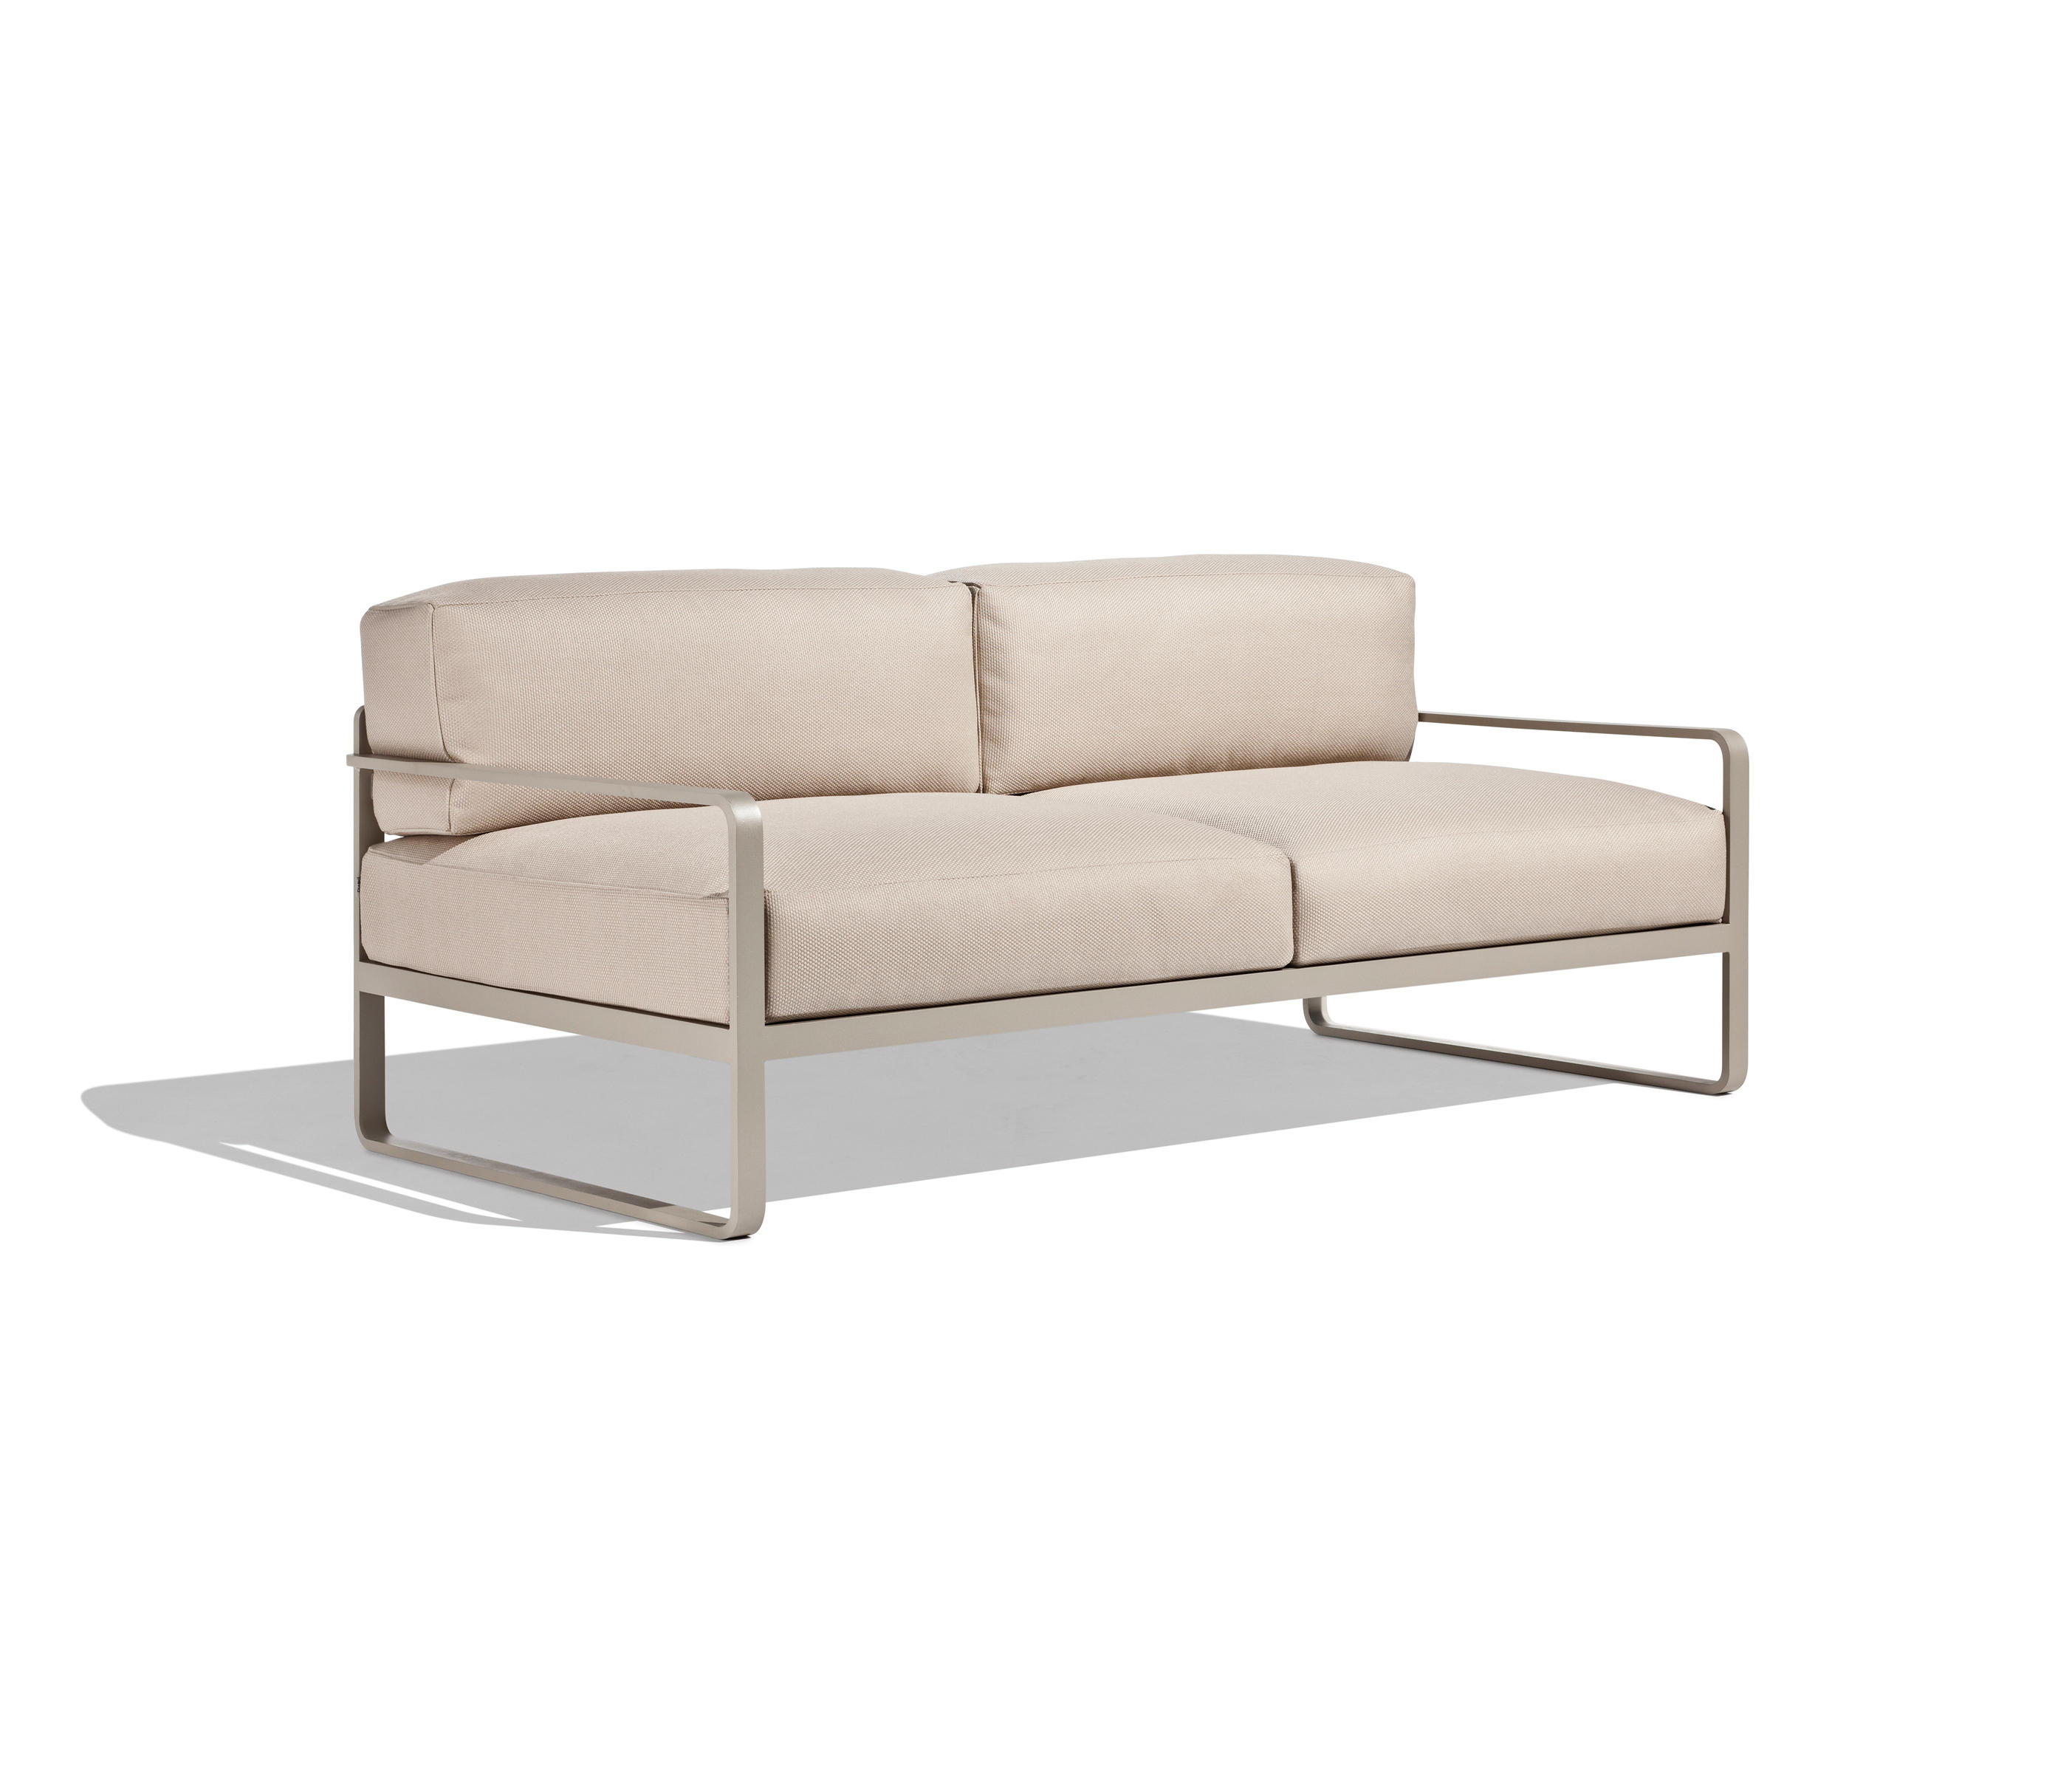 sit 2 seater sofa garden sofas from bivaq architonic